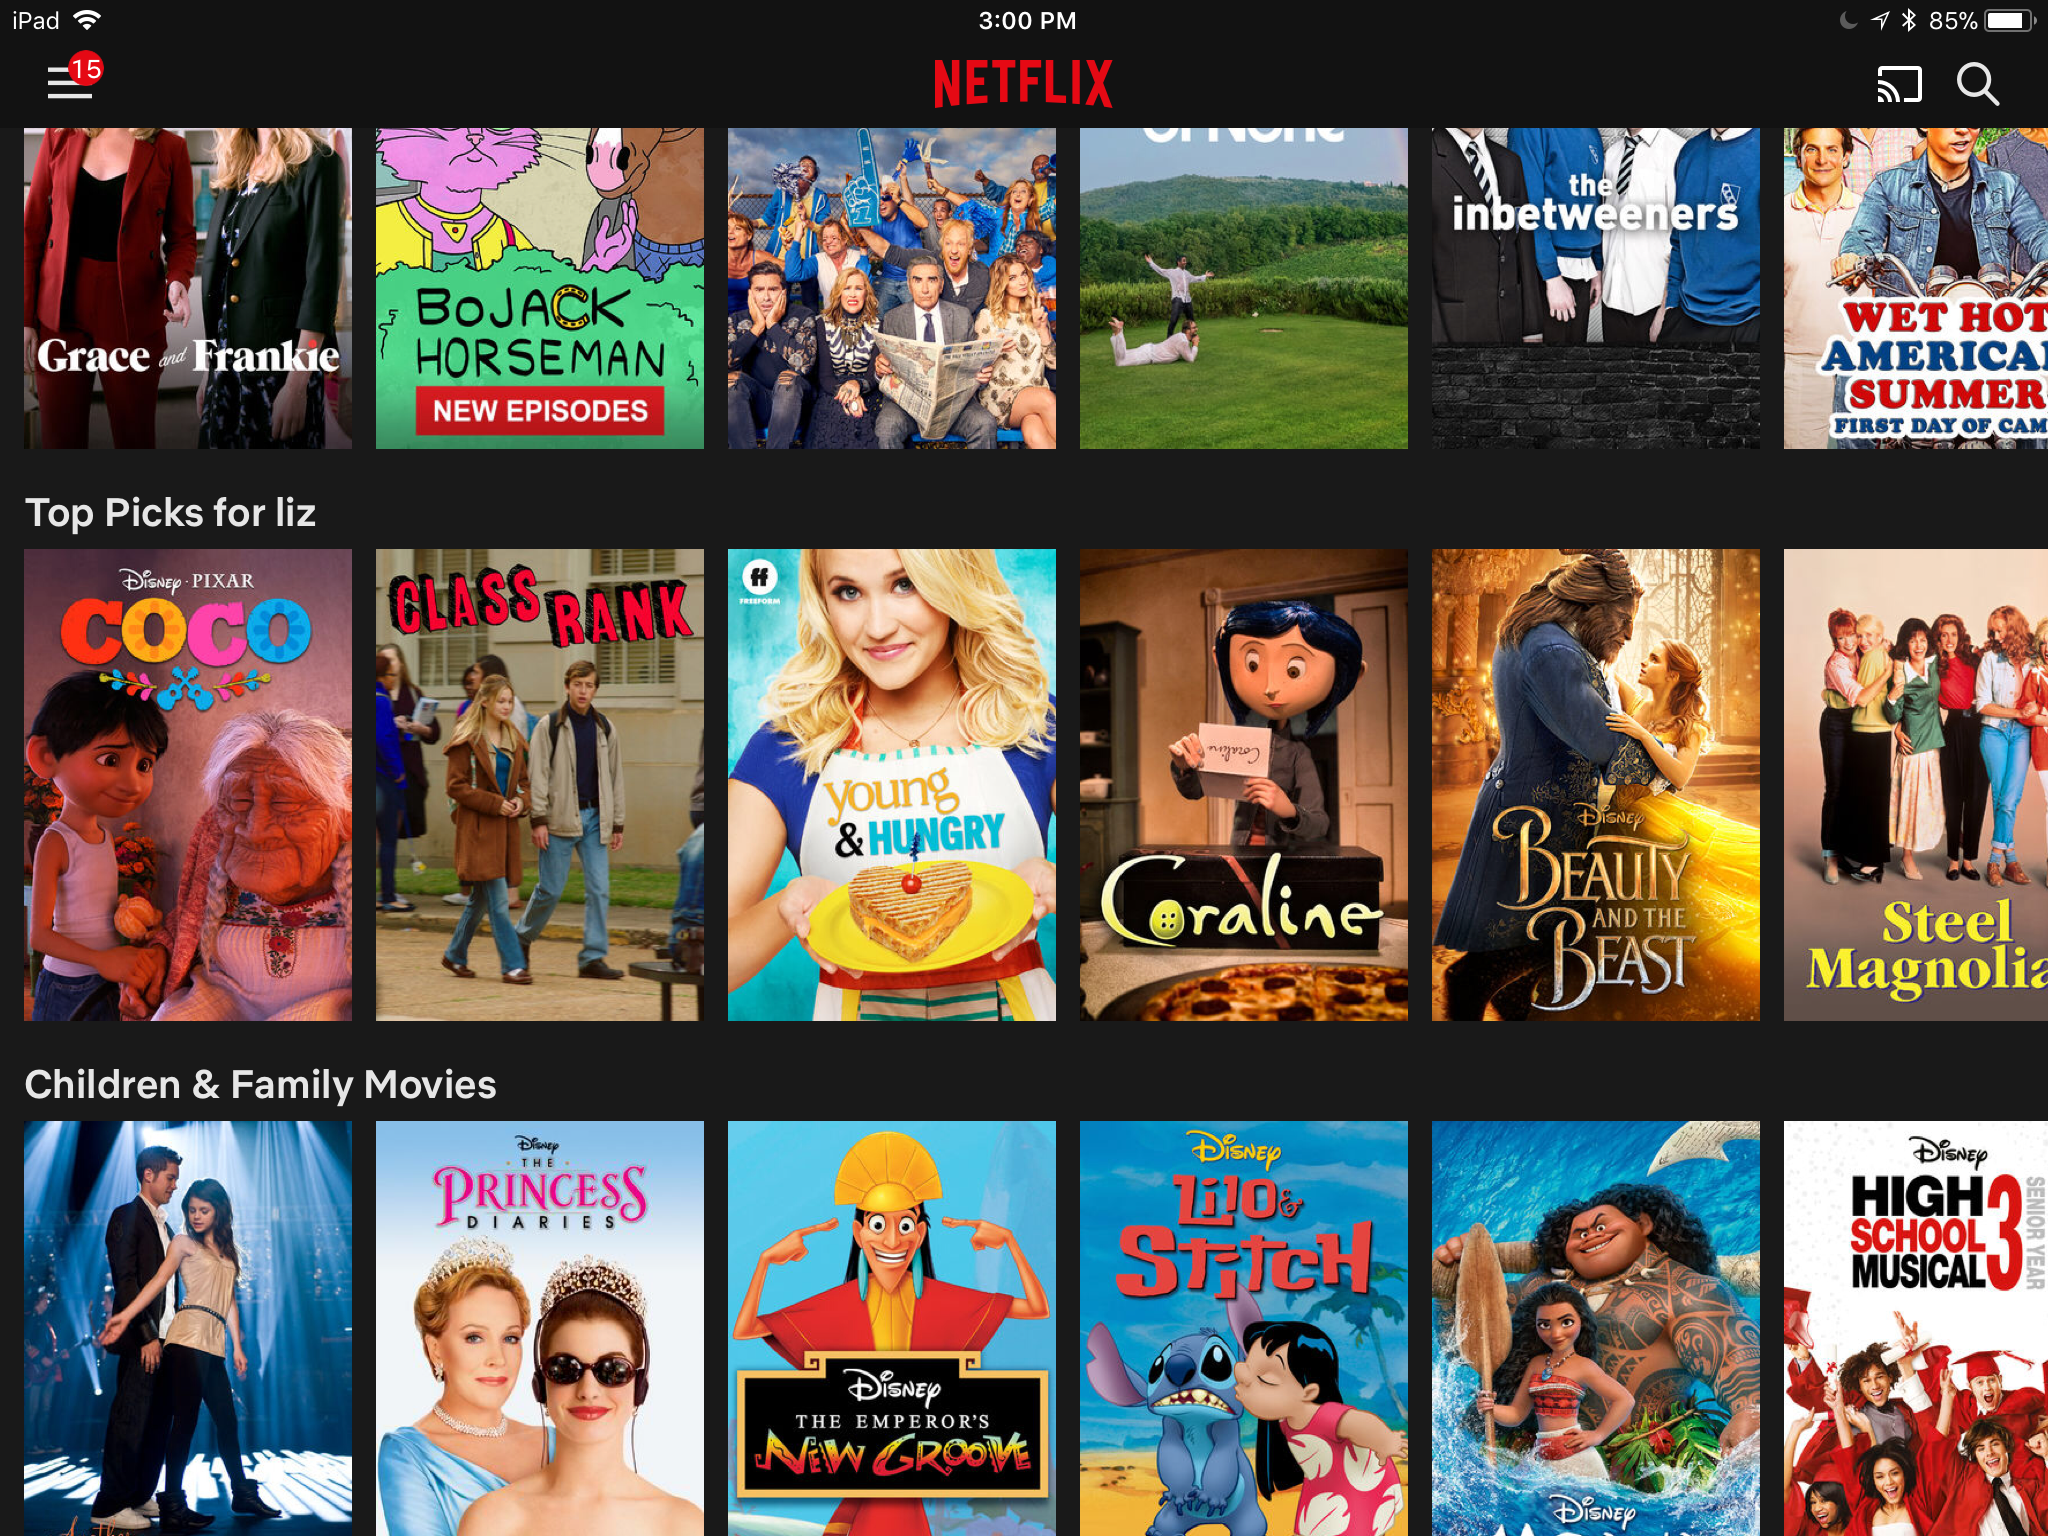 Films recommended by Netflix's personalization system. Films include Coraline, Beauty & The Best, Lilo & Stitch, among others.